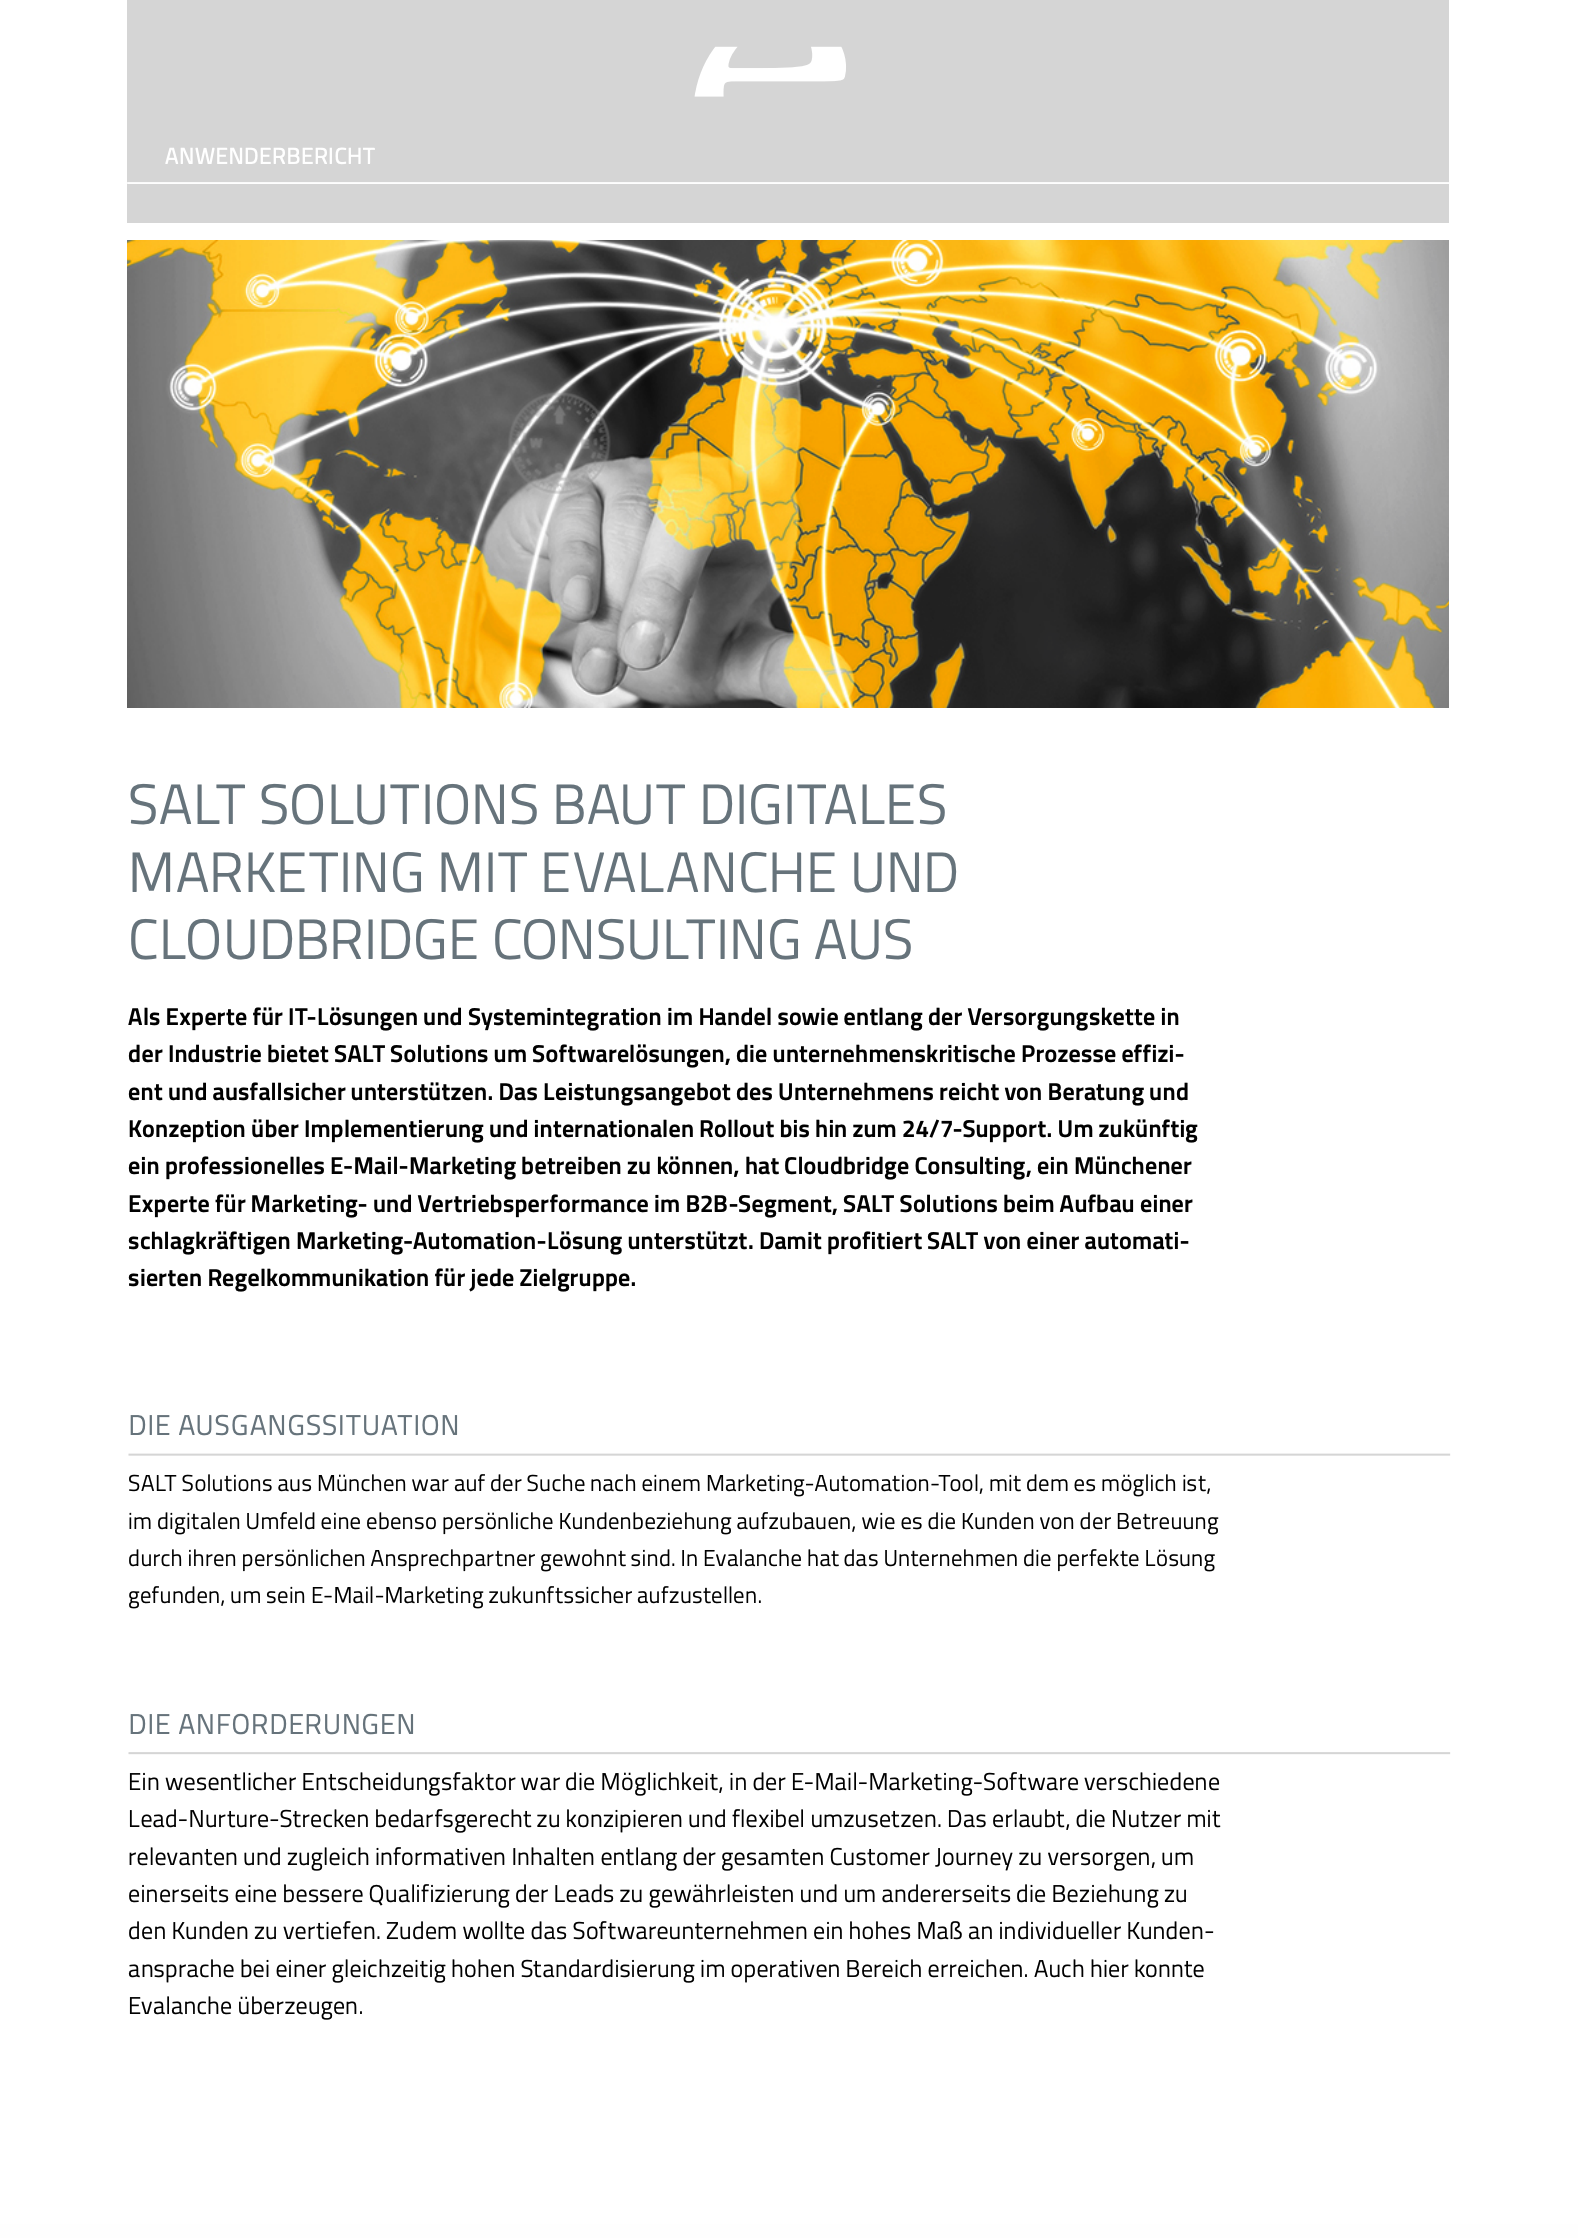 SALT Solutions baut digitales Marketing mit Evalanche und Cloudbridge Consulting aus